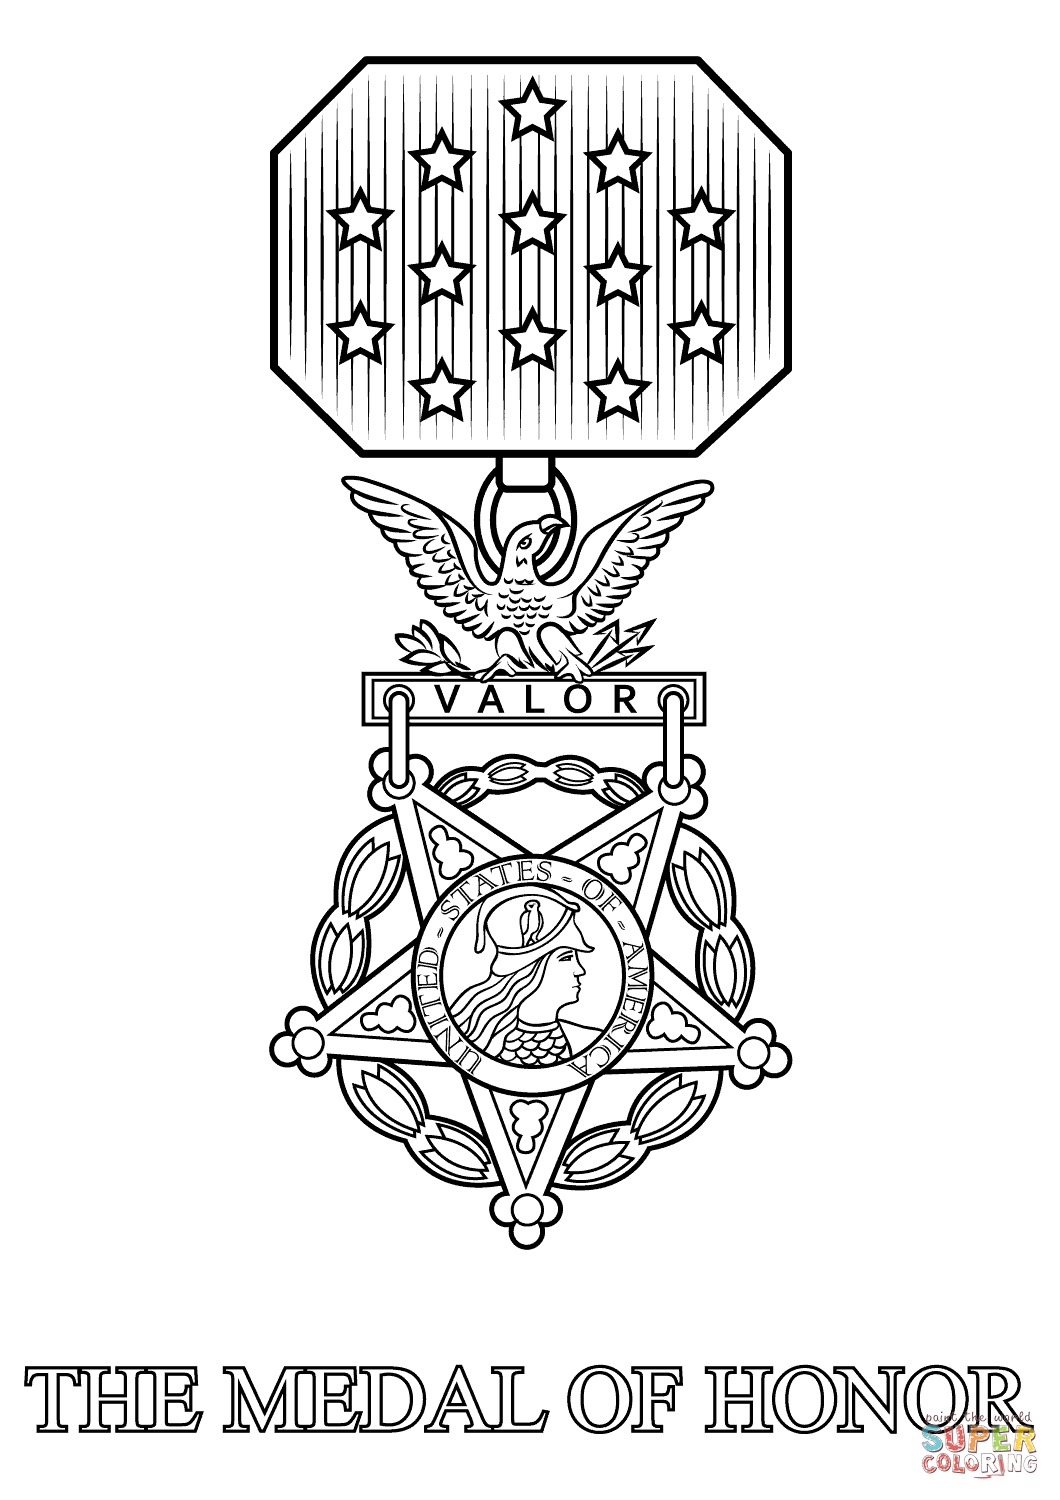 Medal Of Honor Coloring Page From Army Symbols Category Select From 29189 Printable Crafts Of Cartoons Medal Of Honor Coloring Pages Printable Coloring Pages